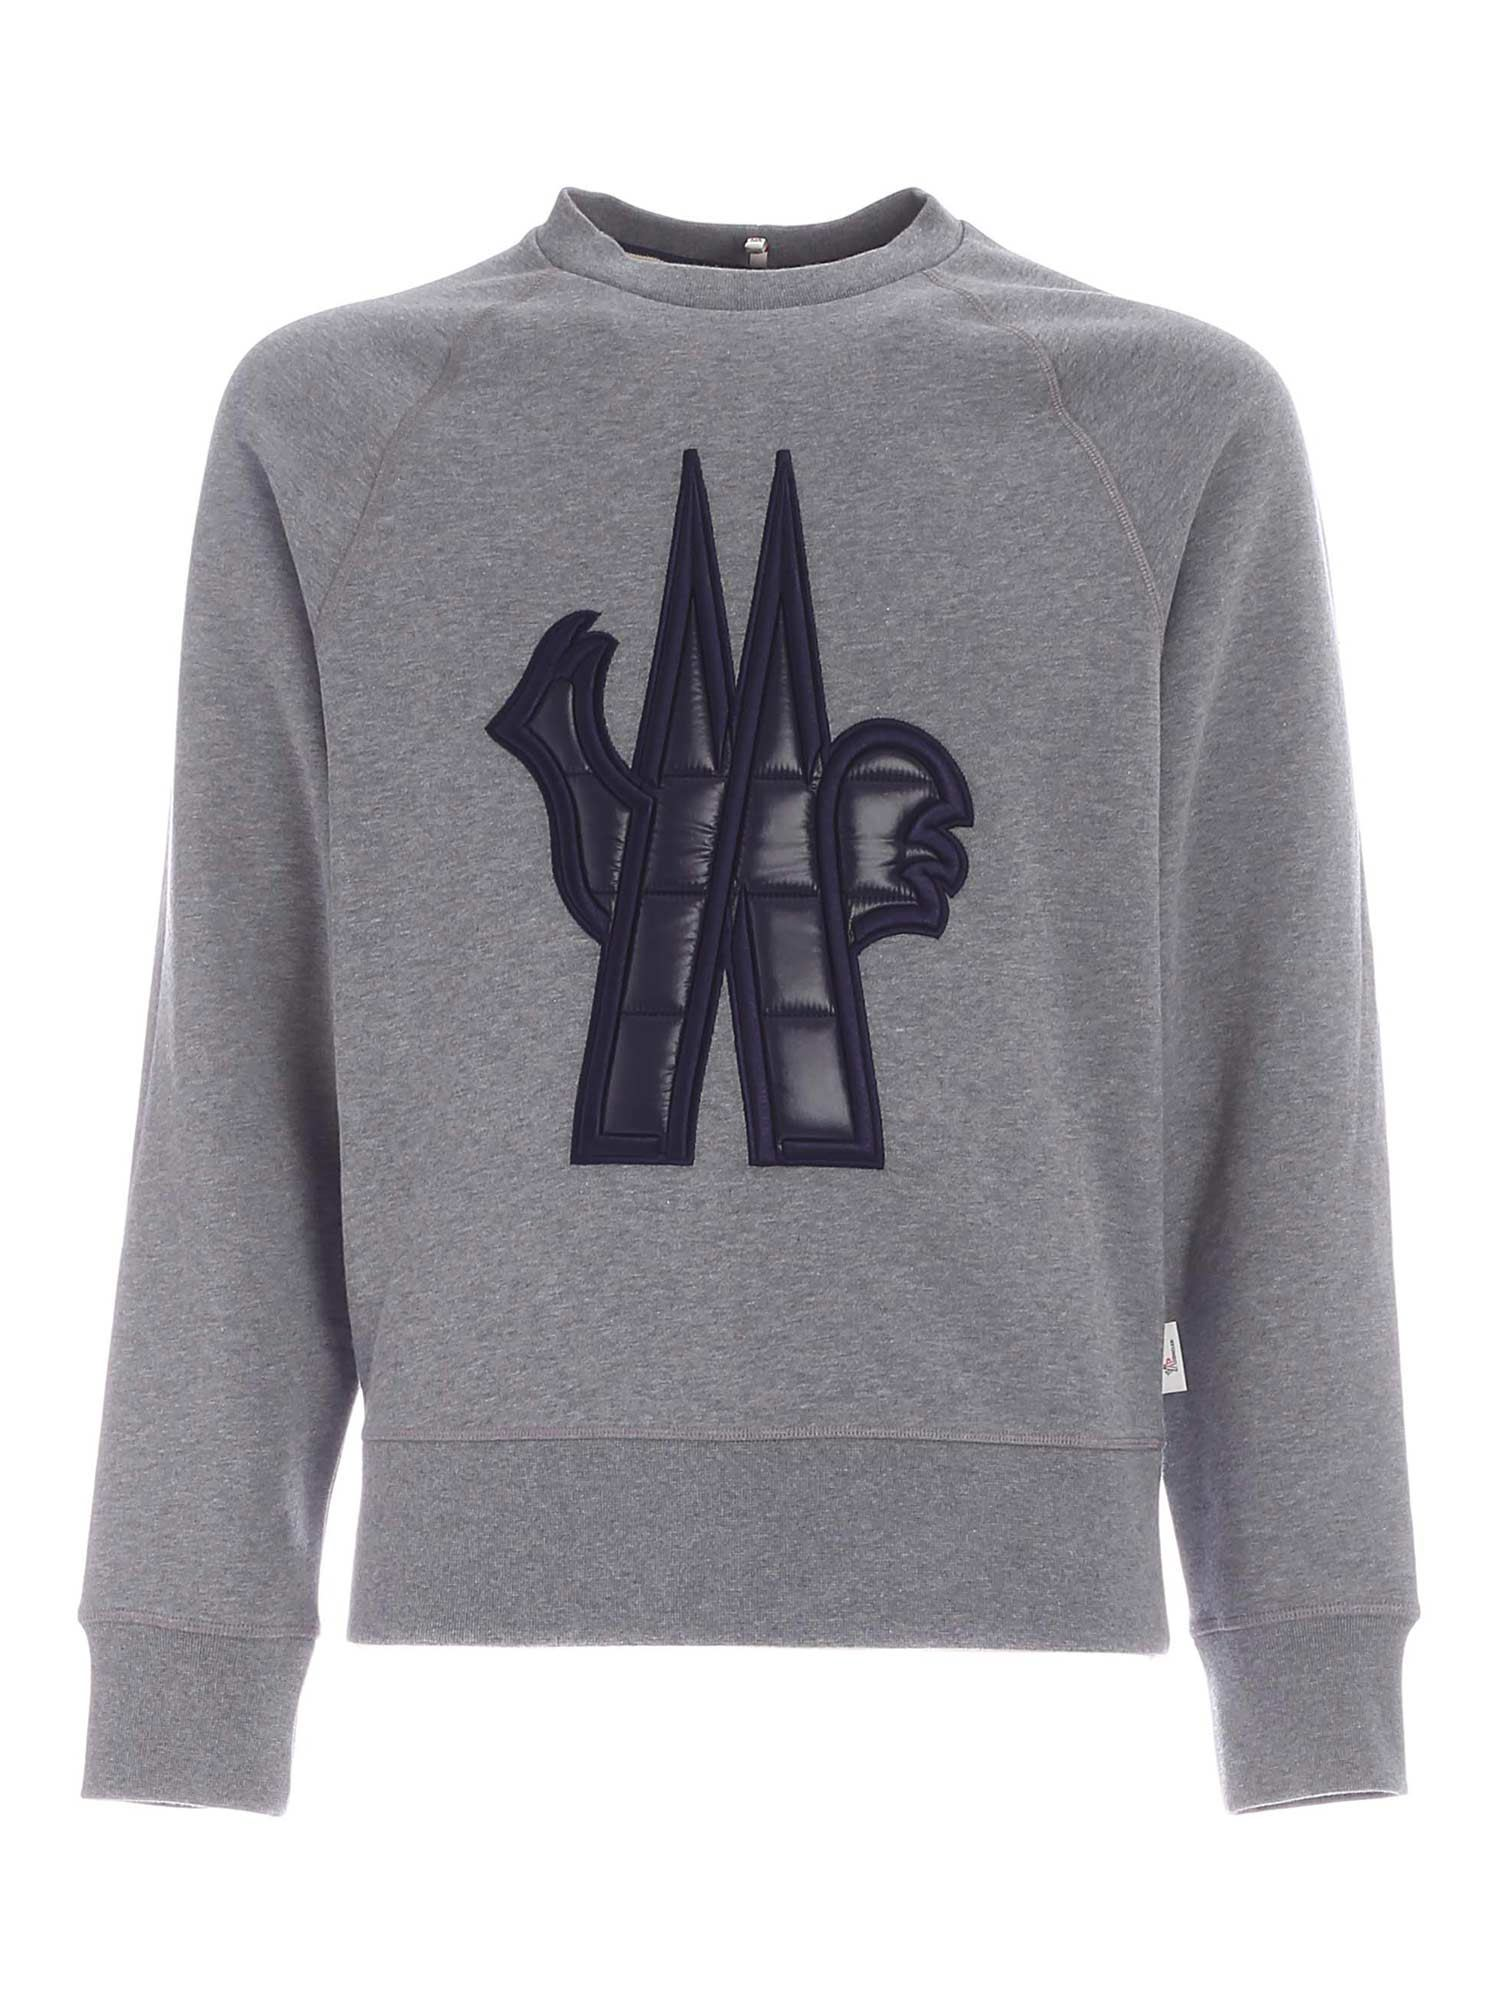 Moncler Grenoble CREWNECK SWEATSHIRT IN GREY